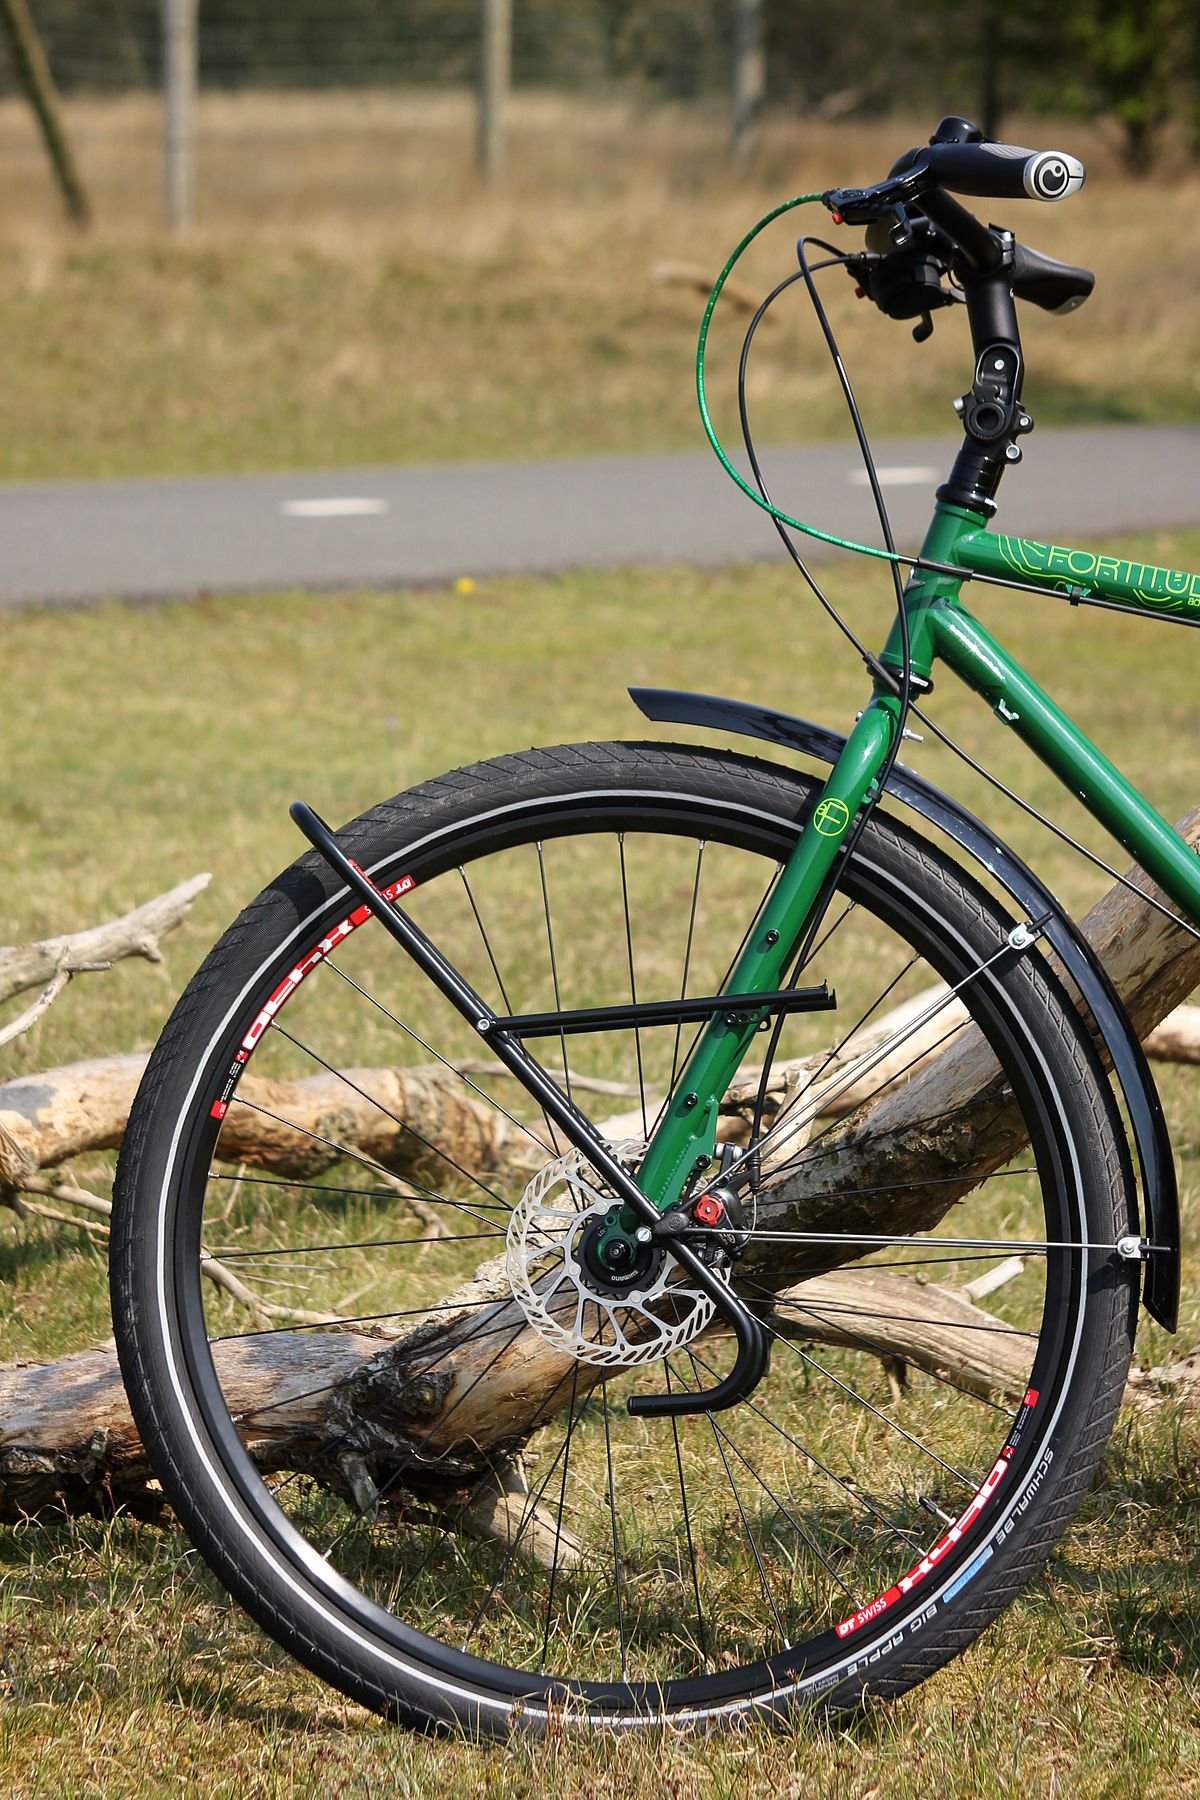 Low Rider Bicycle Luggage Carrier Wikipedia